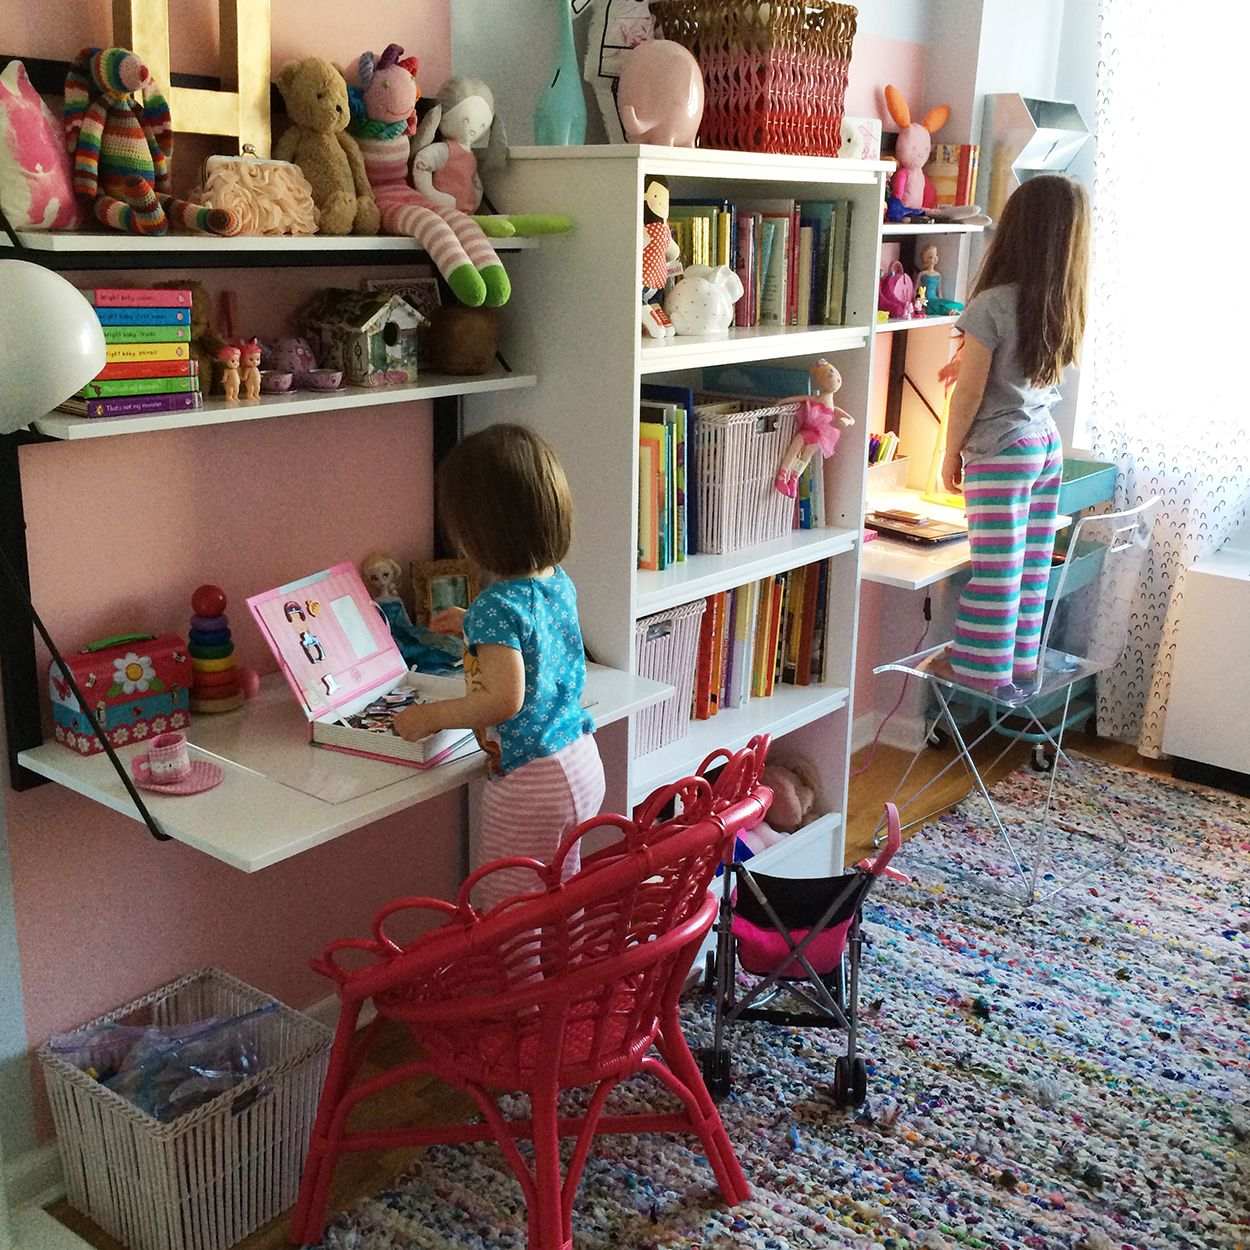 Siblings Sharing Bedroom: The Ultimate Small Shared Bedroom For Two Growing Girls